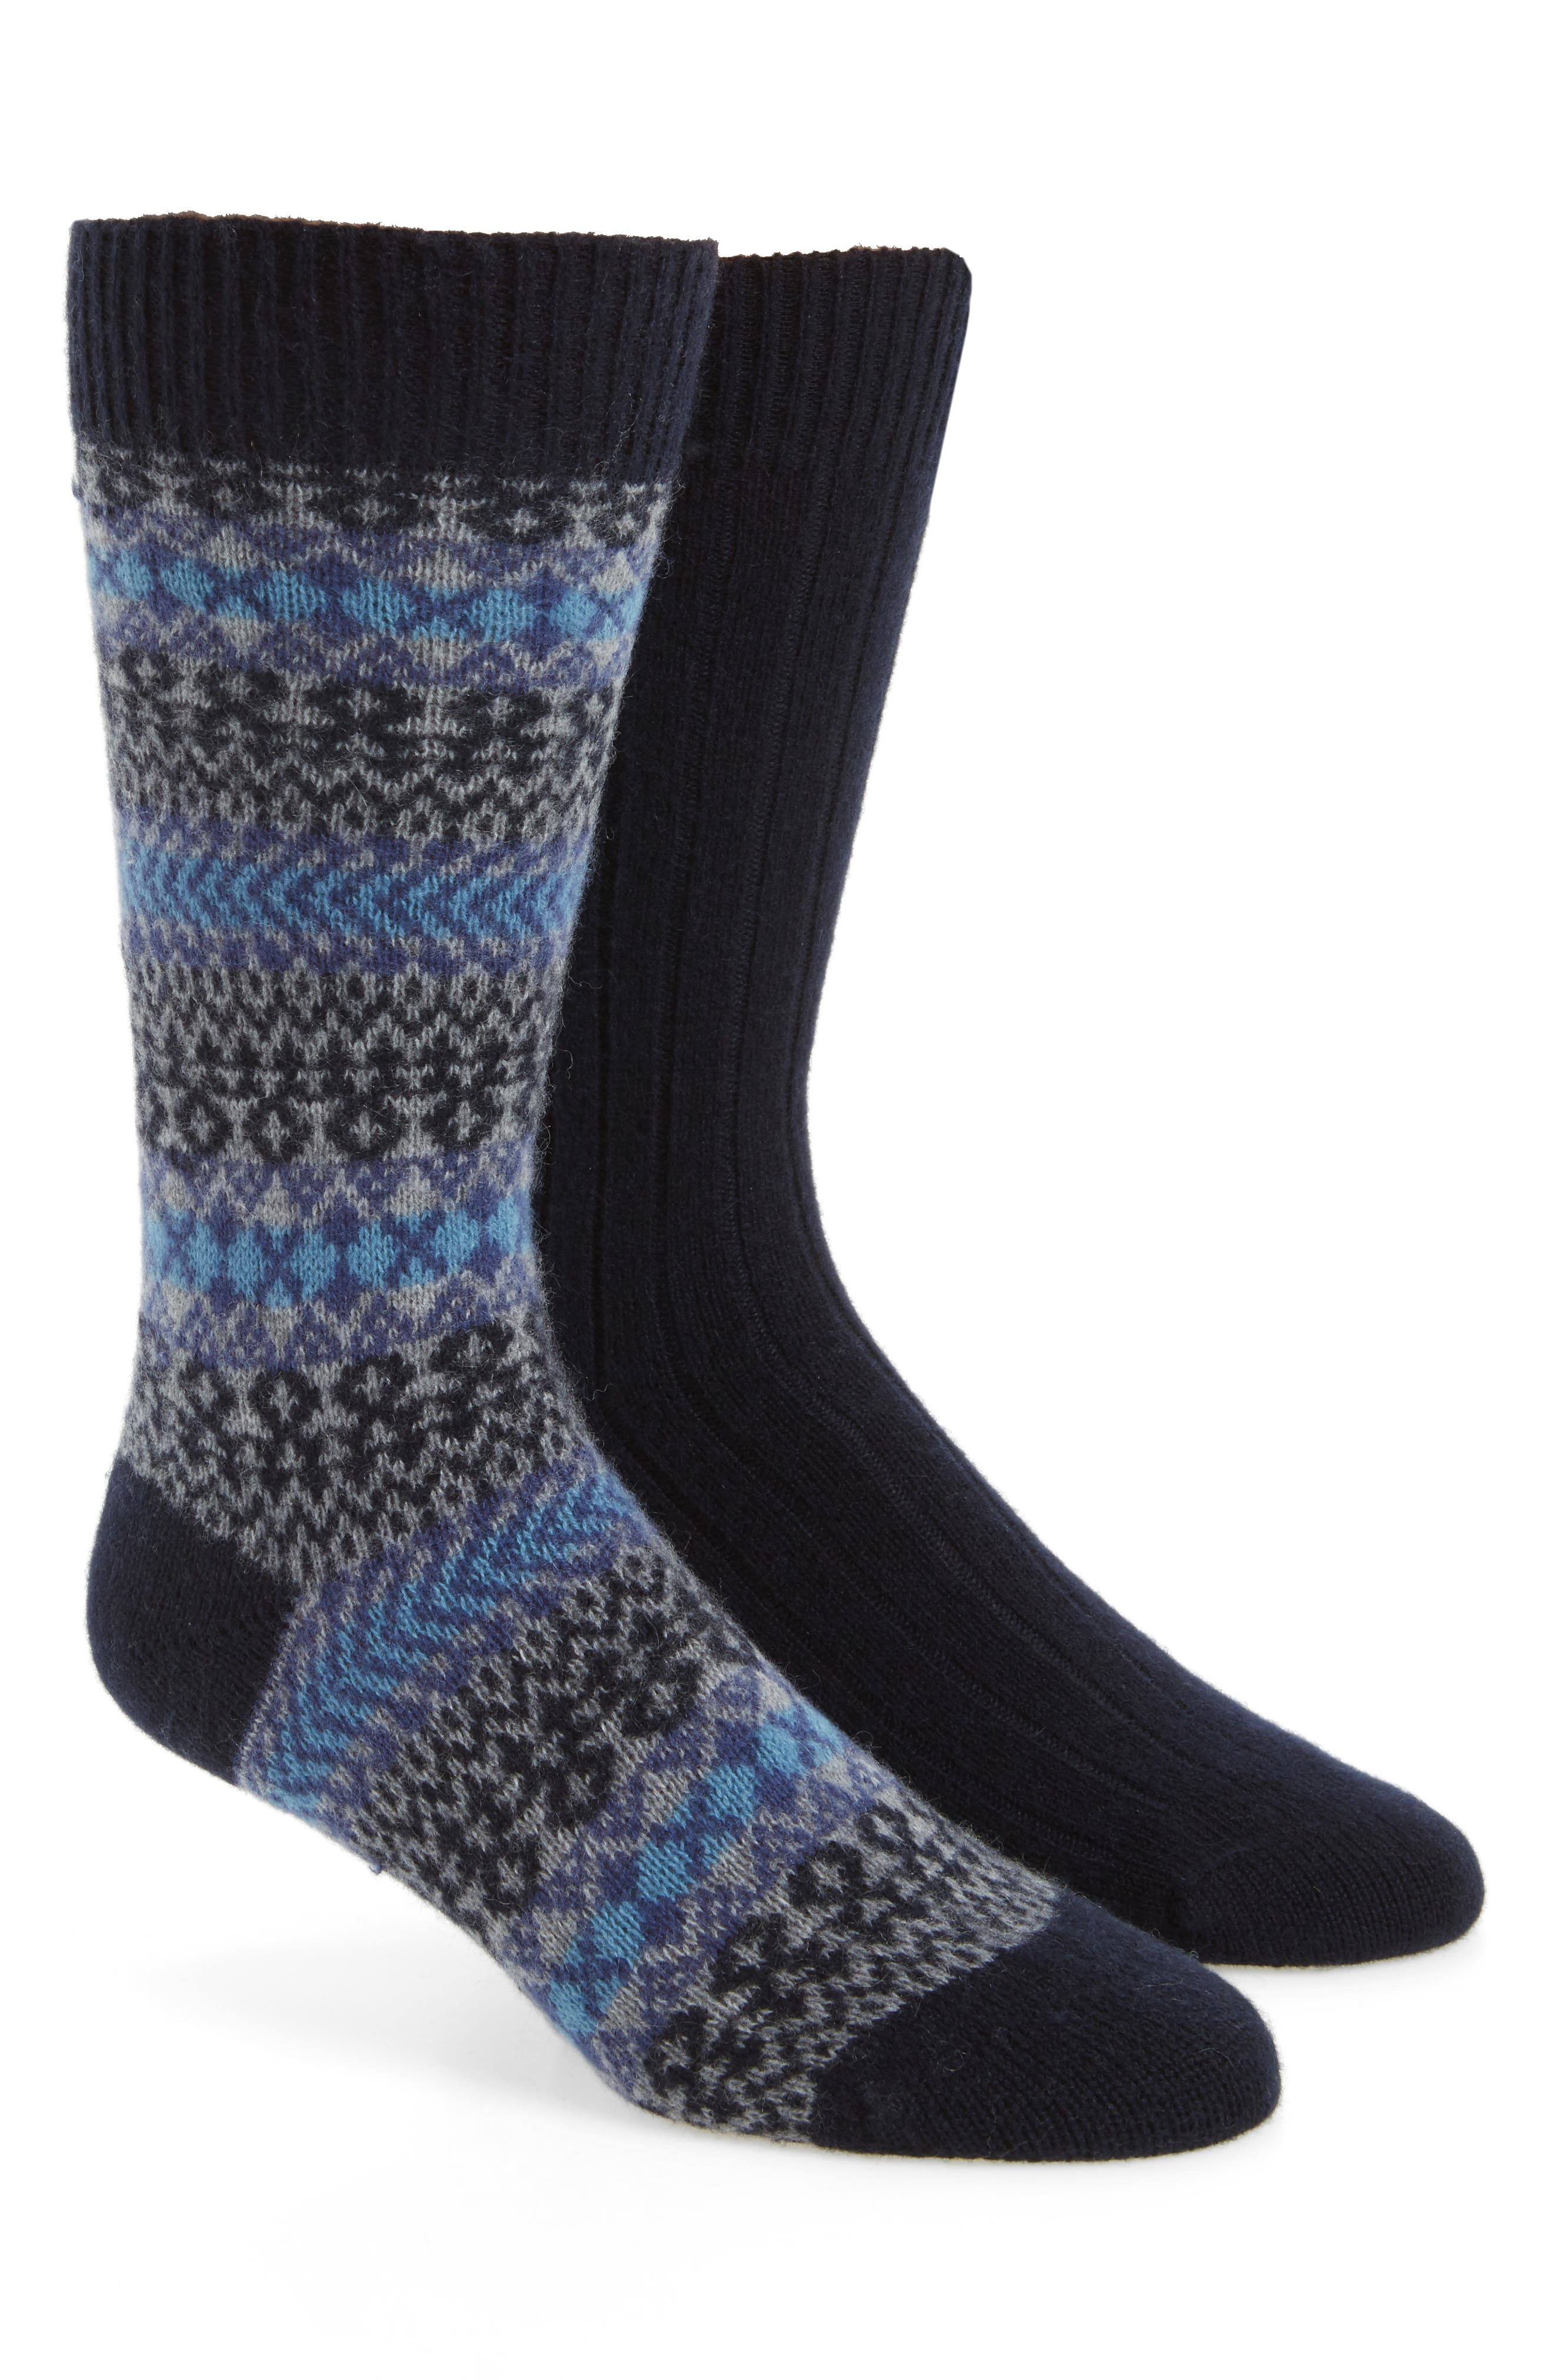 Pantherella 2-Pack Cashmere Blend Socks